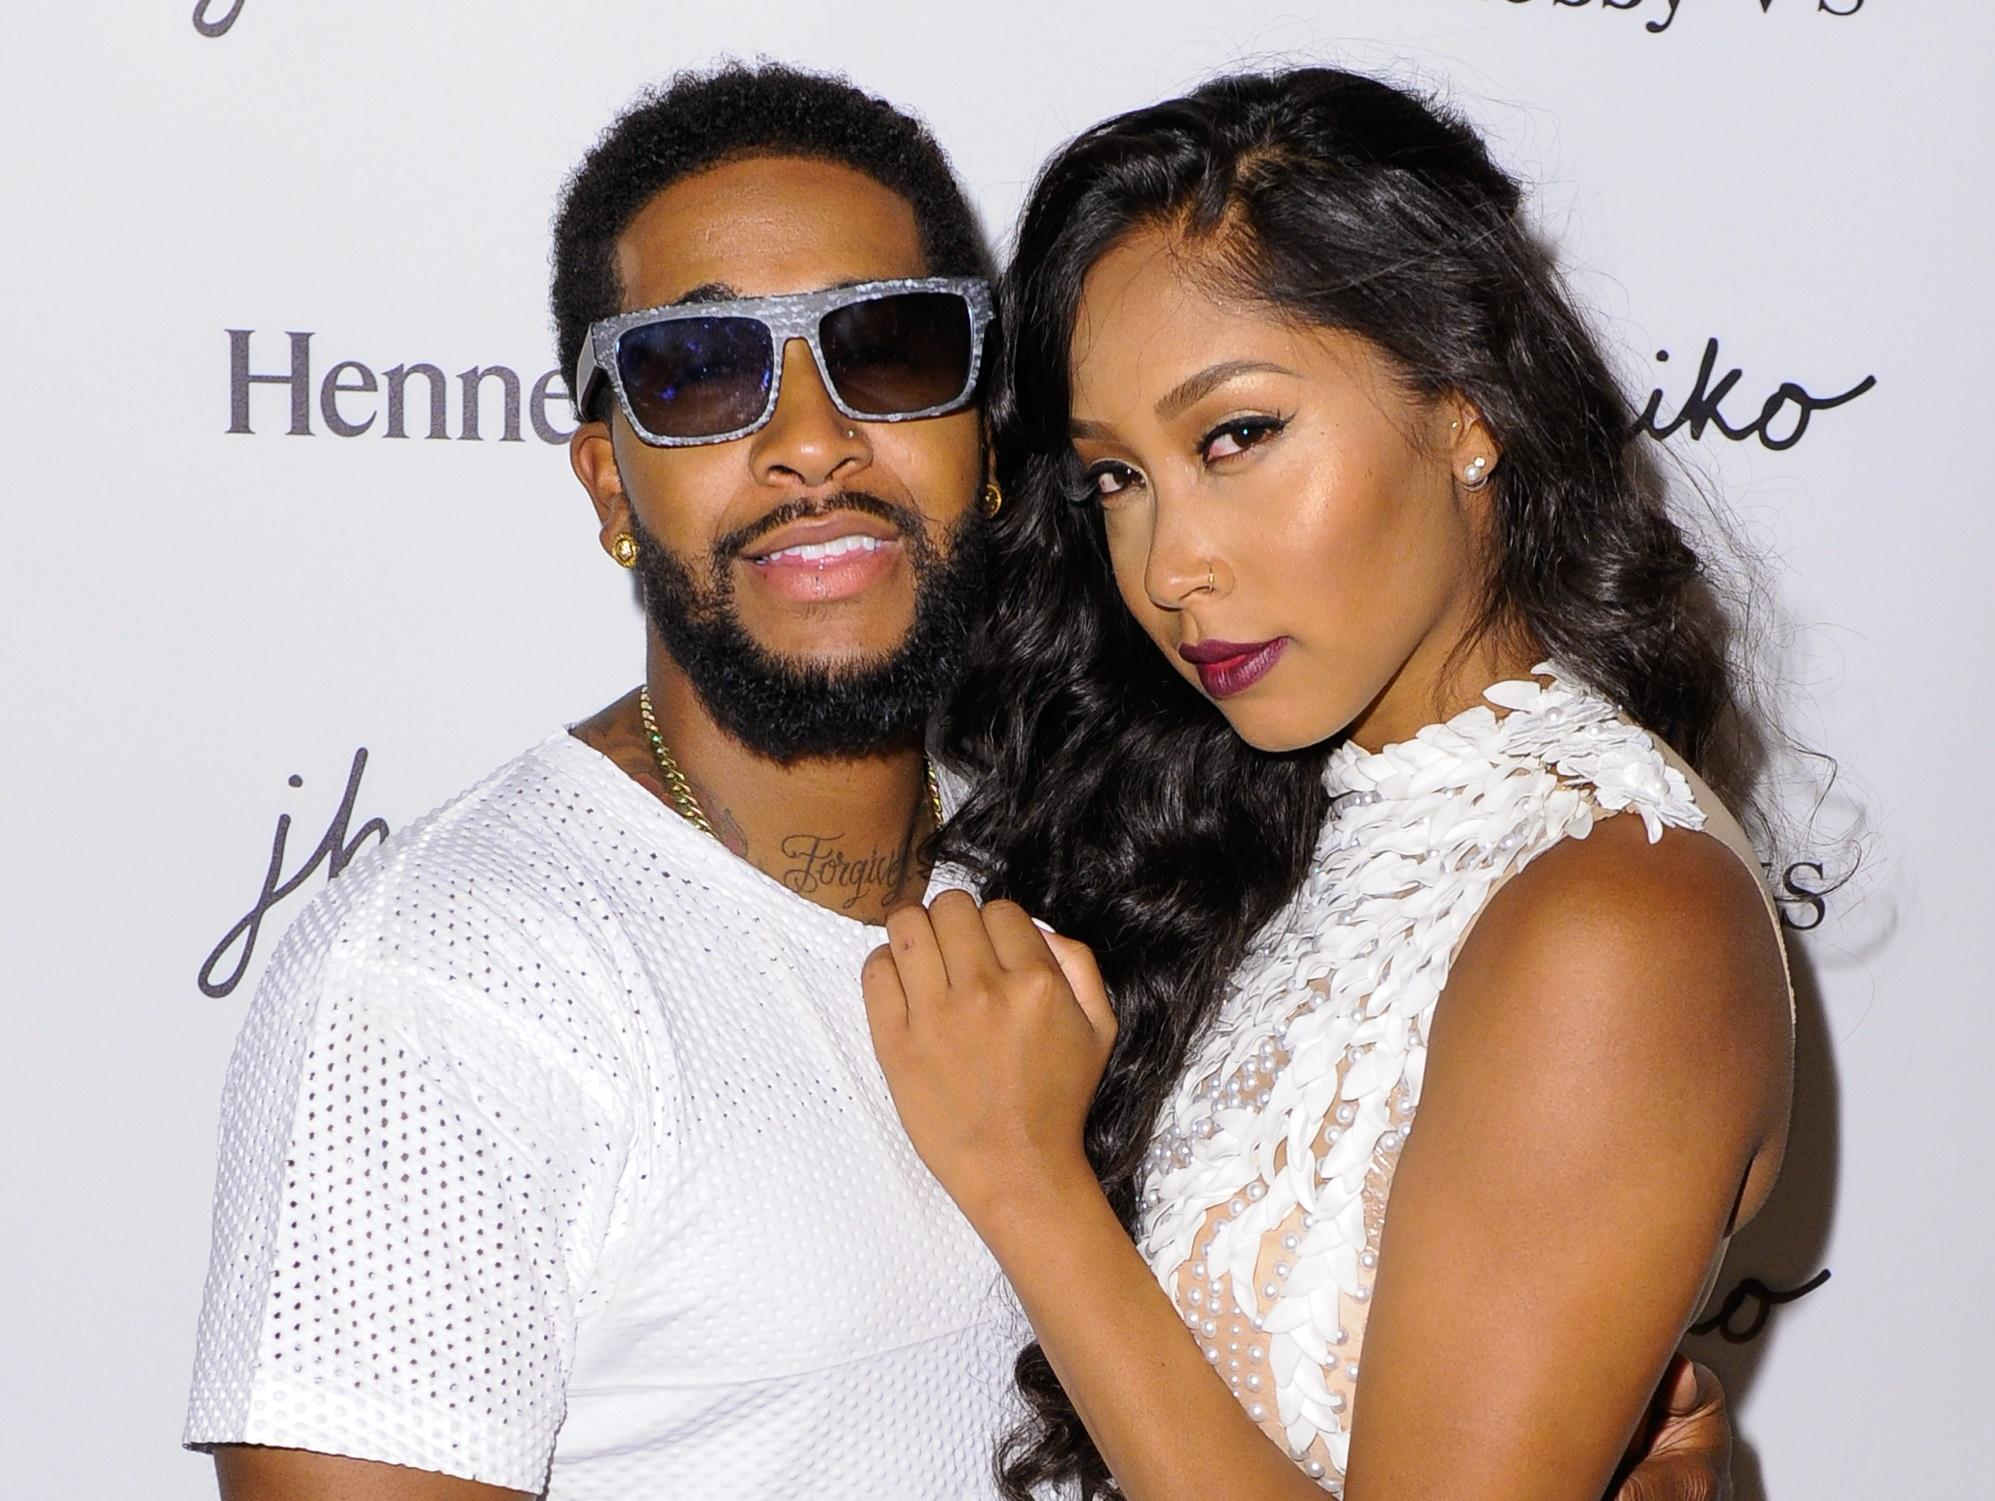 Omarion and Apryl Jones breakup